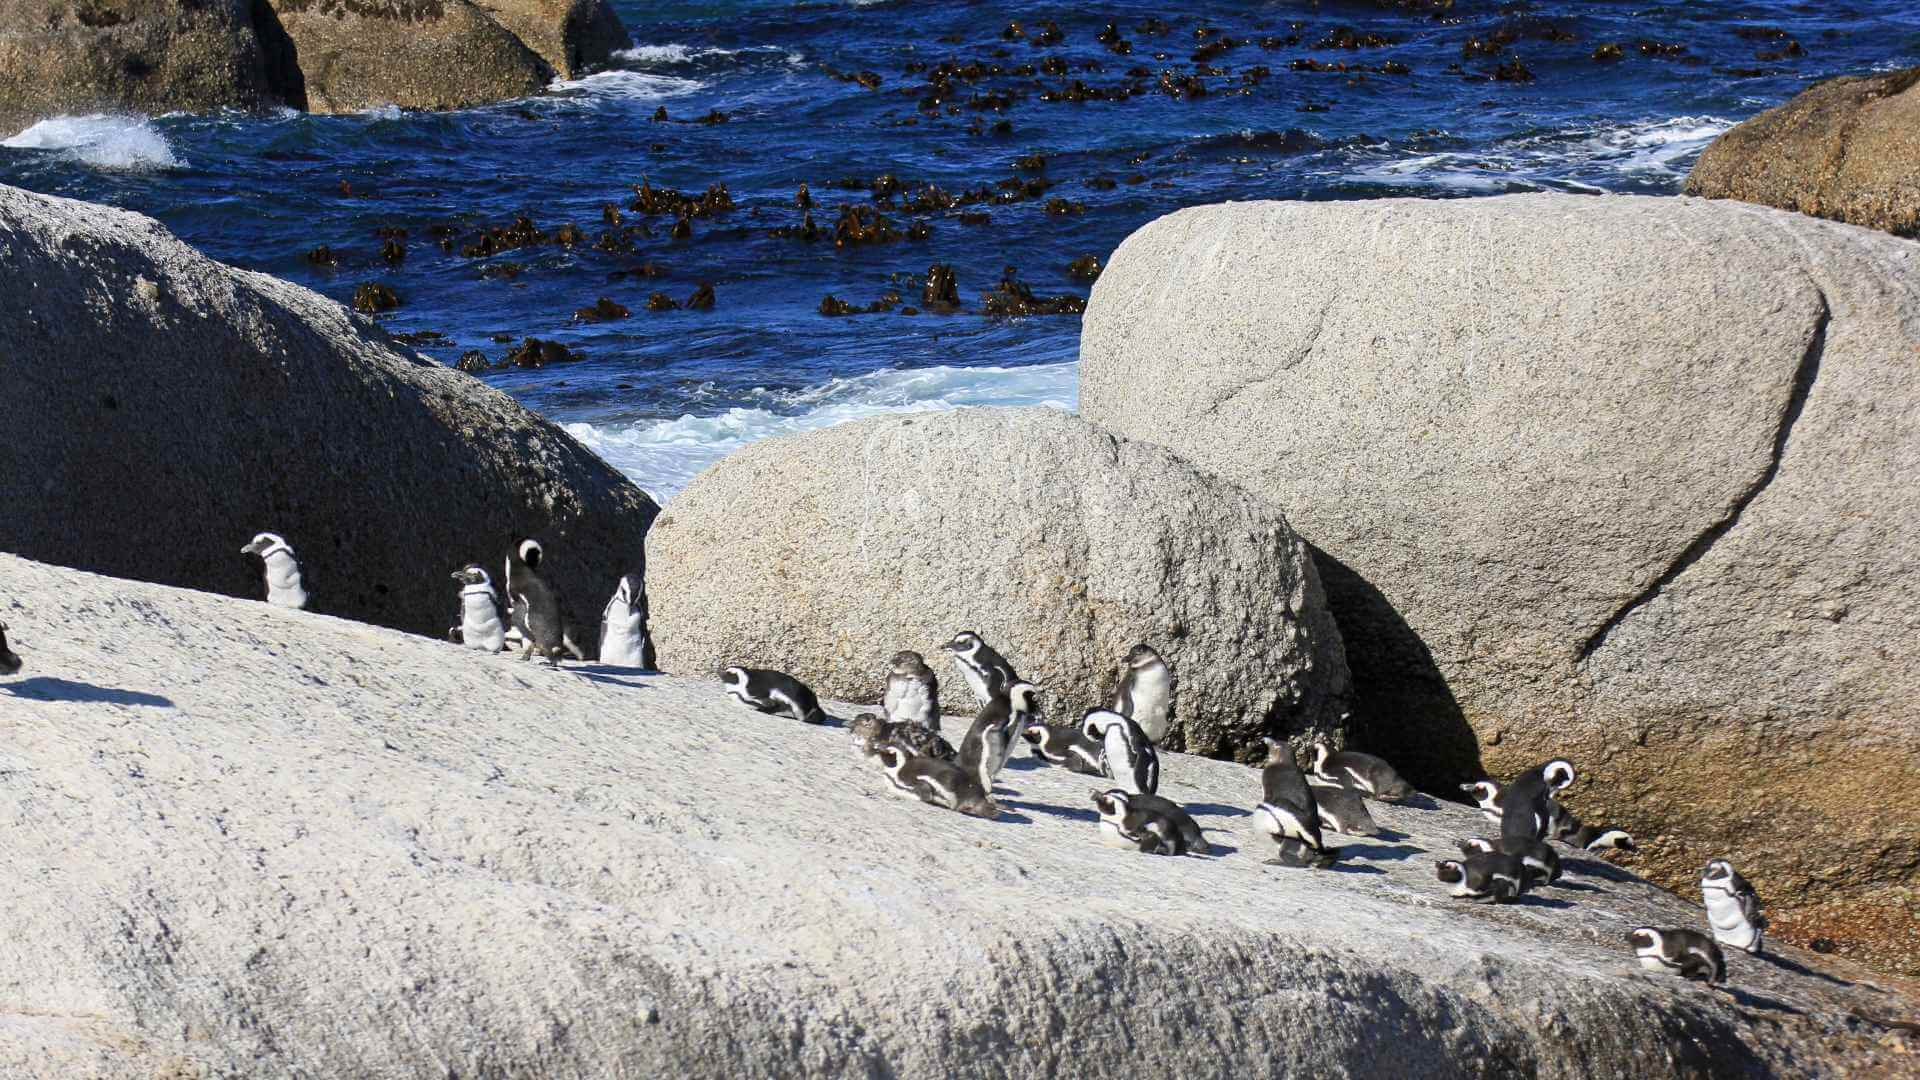 Sunbathing penguins, Boulders Bay, South Africa